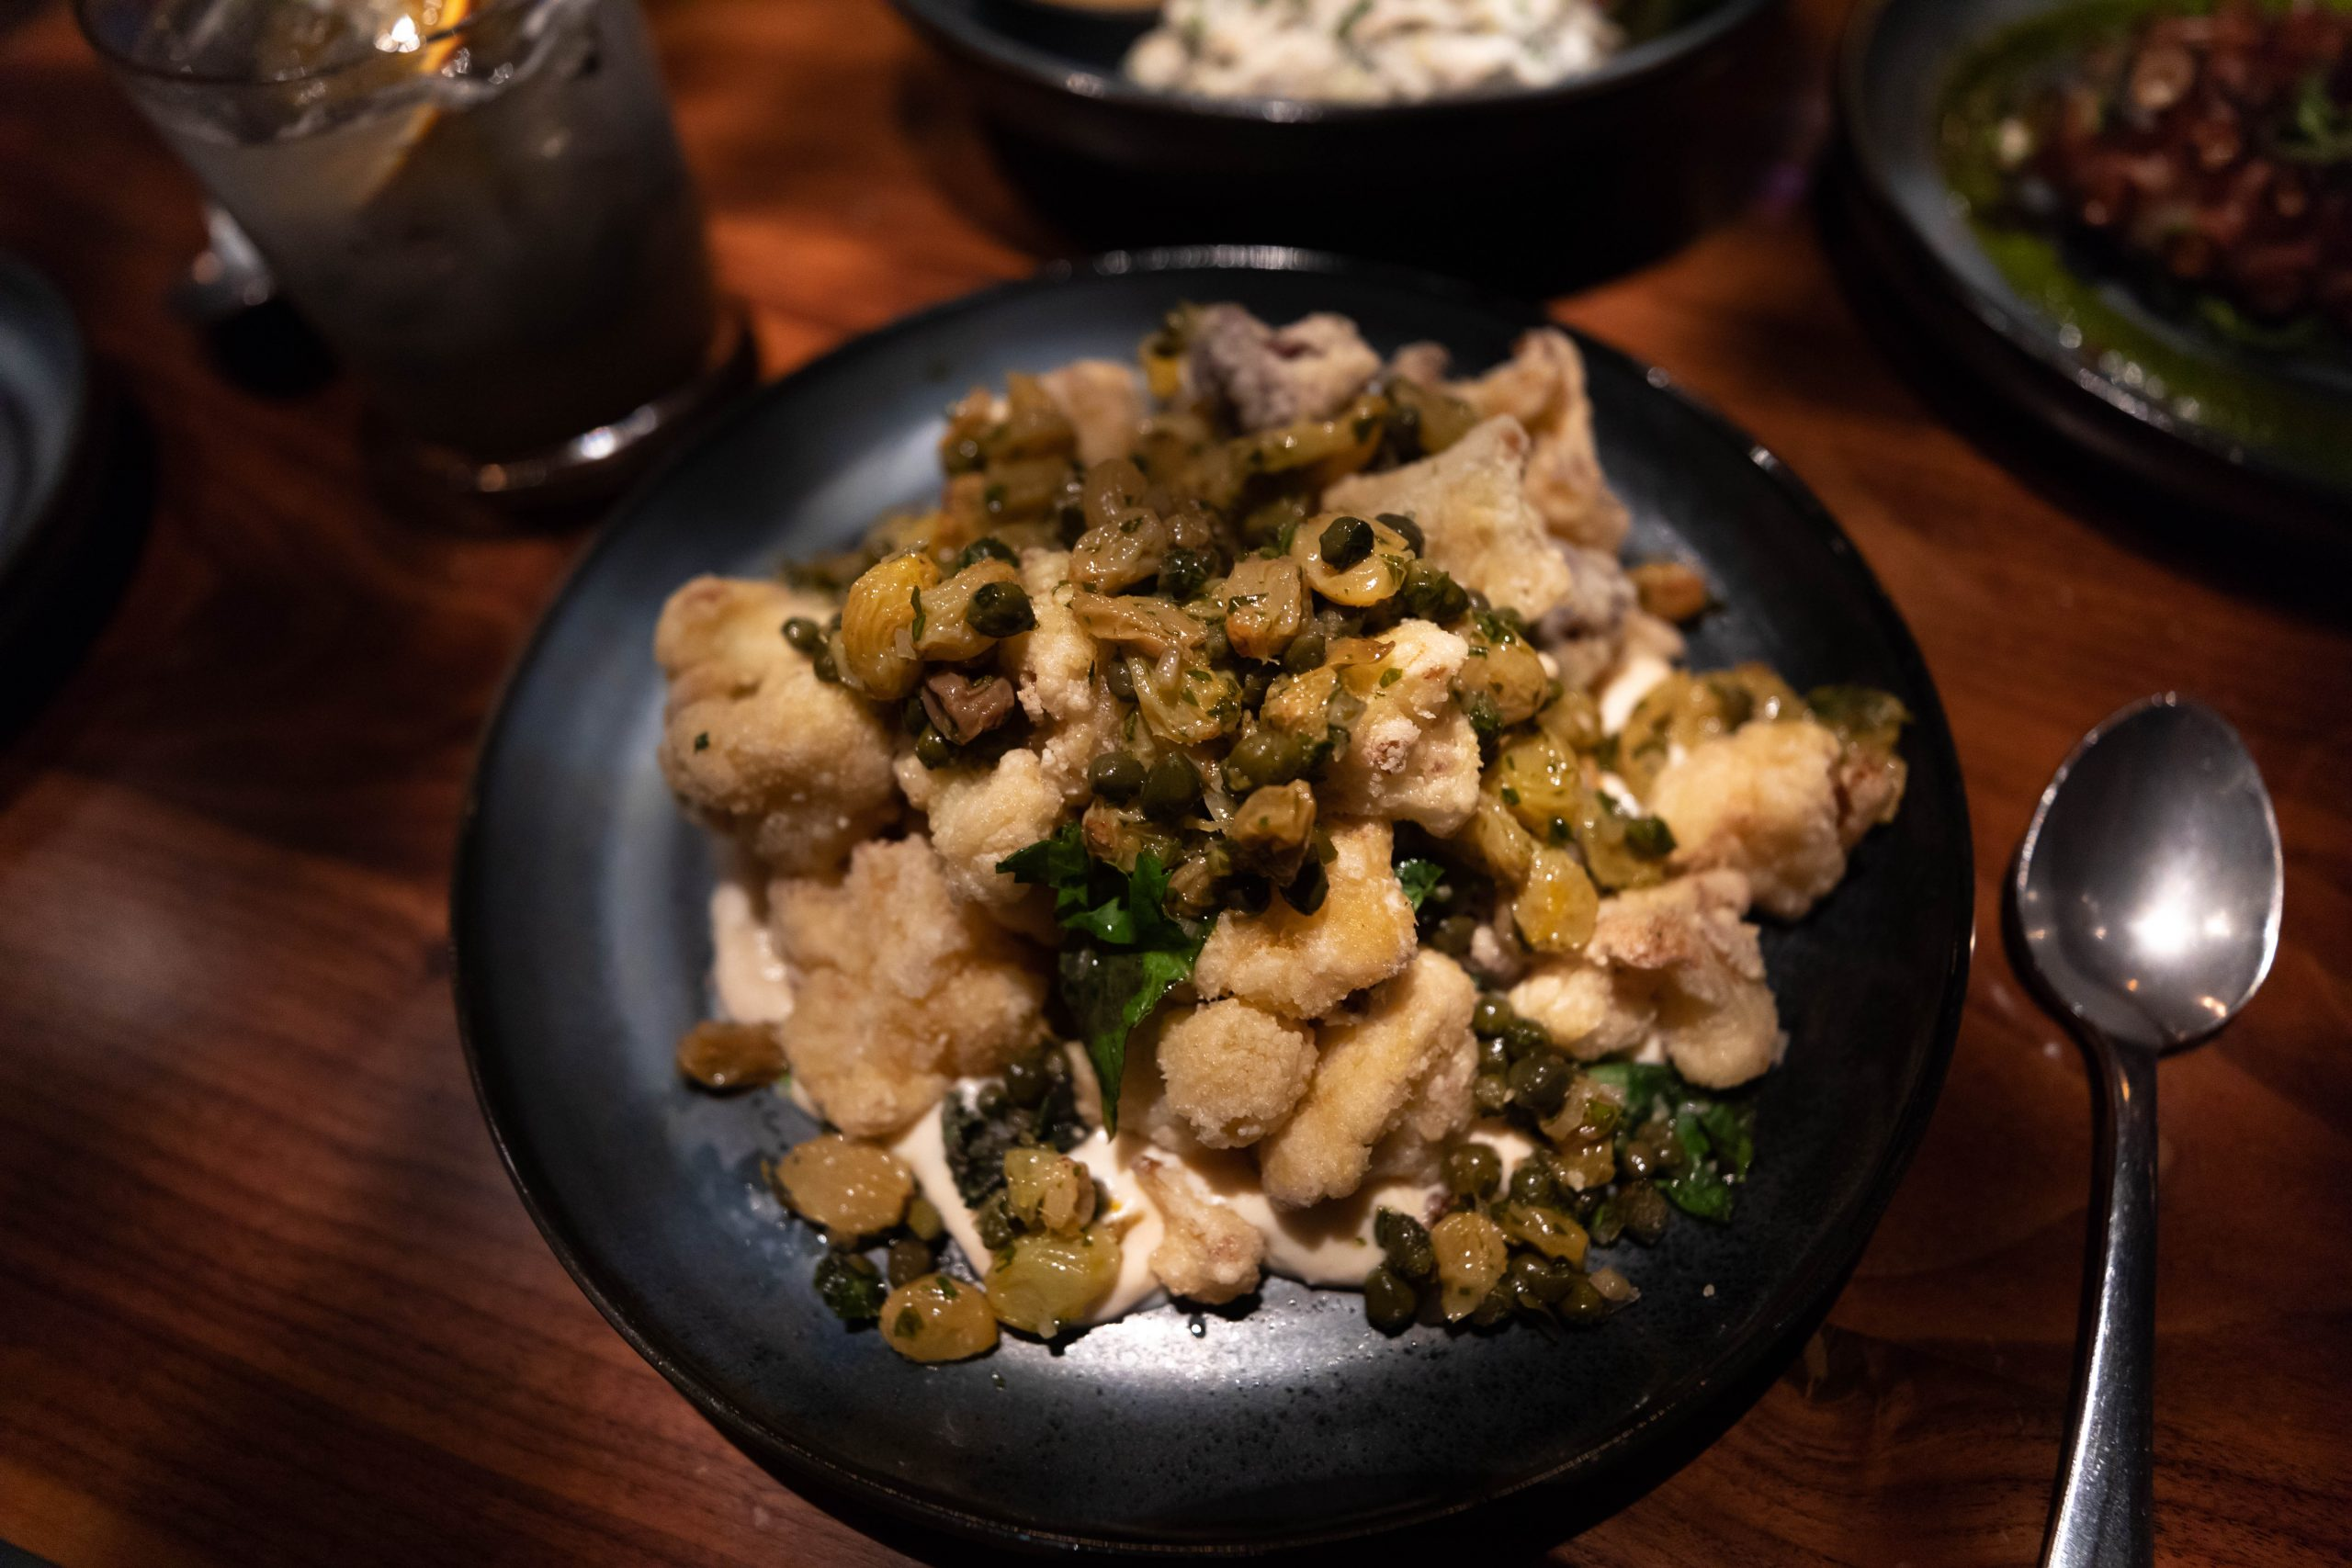 Crispy Cauliflower Golden Raisin-Caper Salsa Verde, Fresh Herbs, Red Curry Yogurt at Aerlume Seattle Washington Puget Sound Pacific Northwest Farm to Table Fine Dining by Annie Fairfax